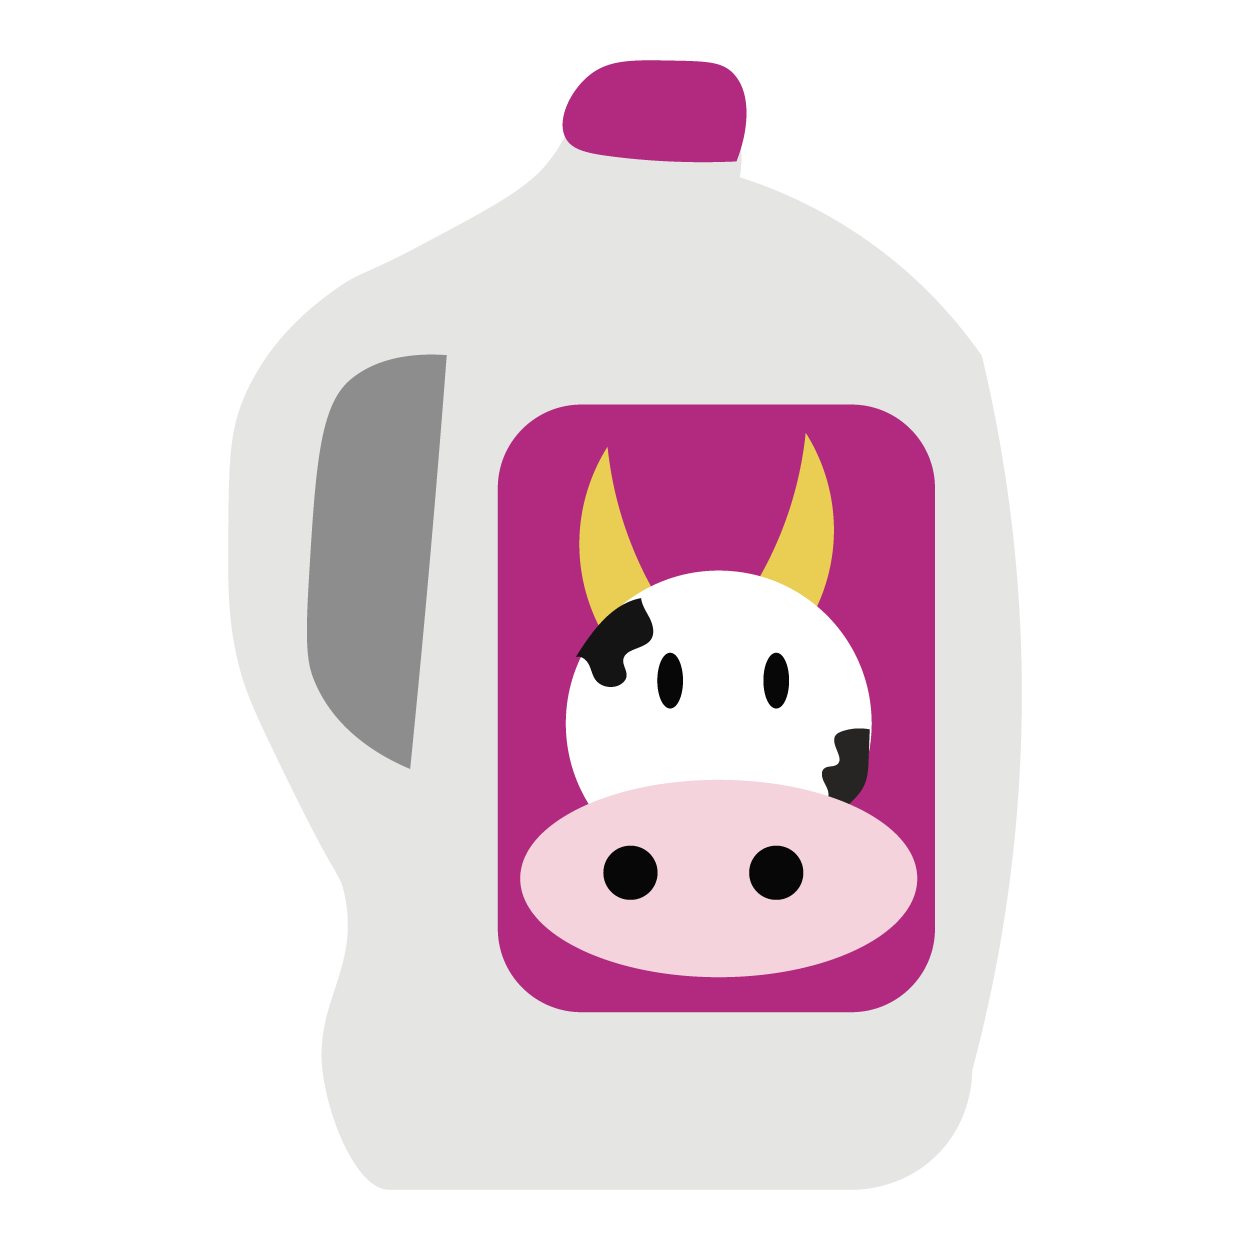 dairy icon-01.png